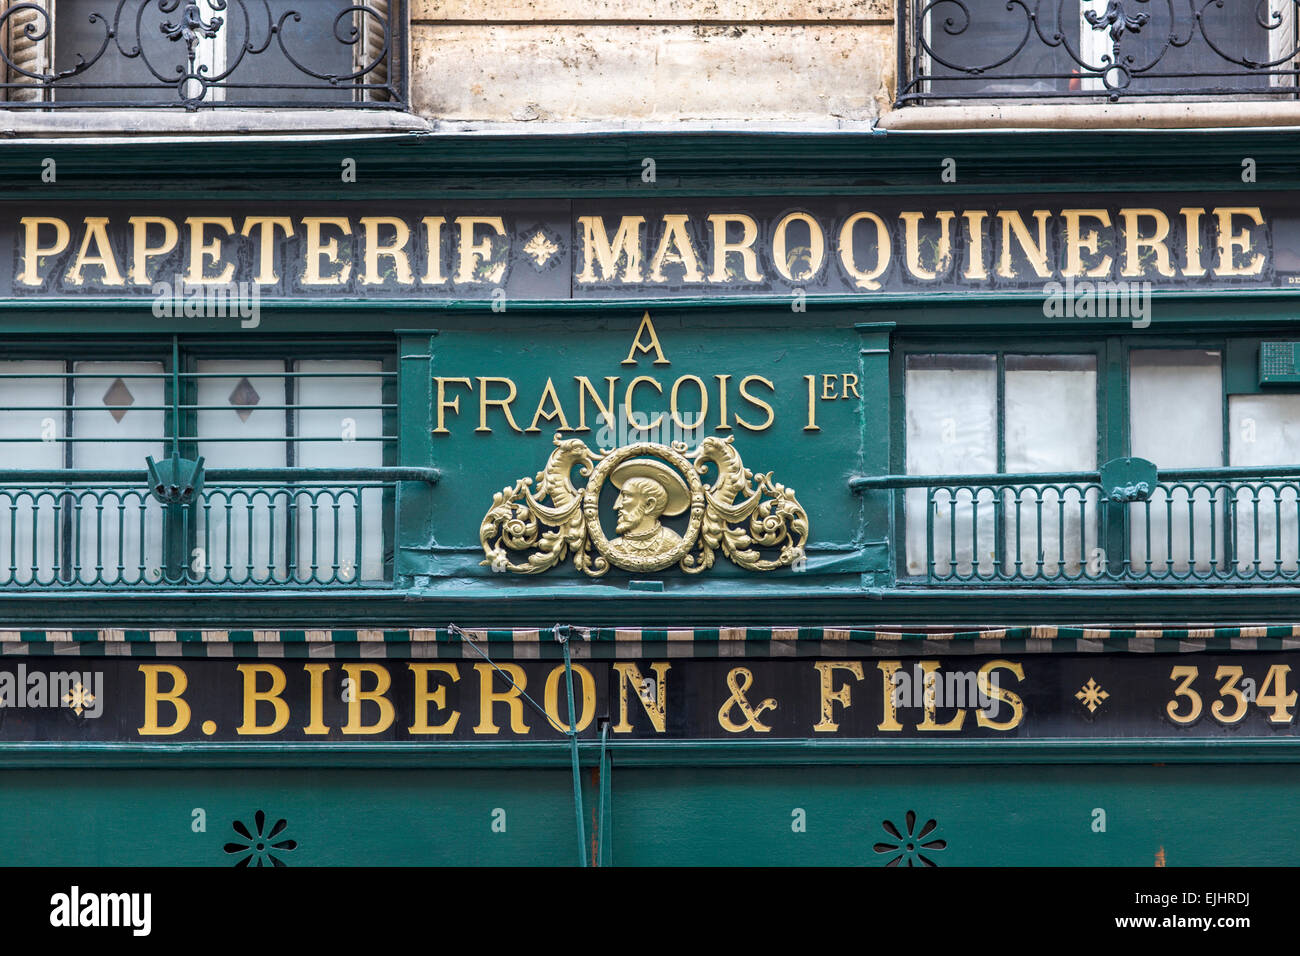 Paper and leather goods shop front, Paris, France - Stock Image